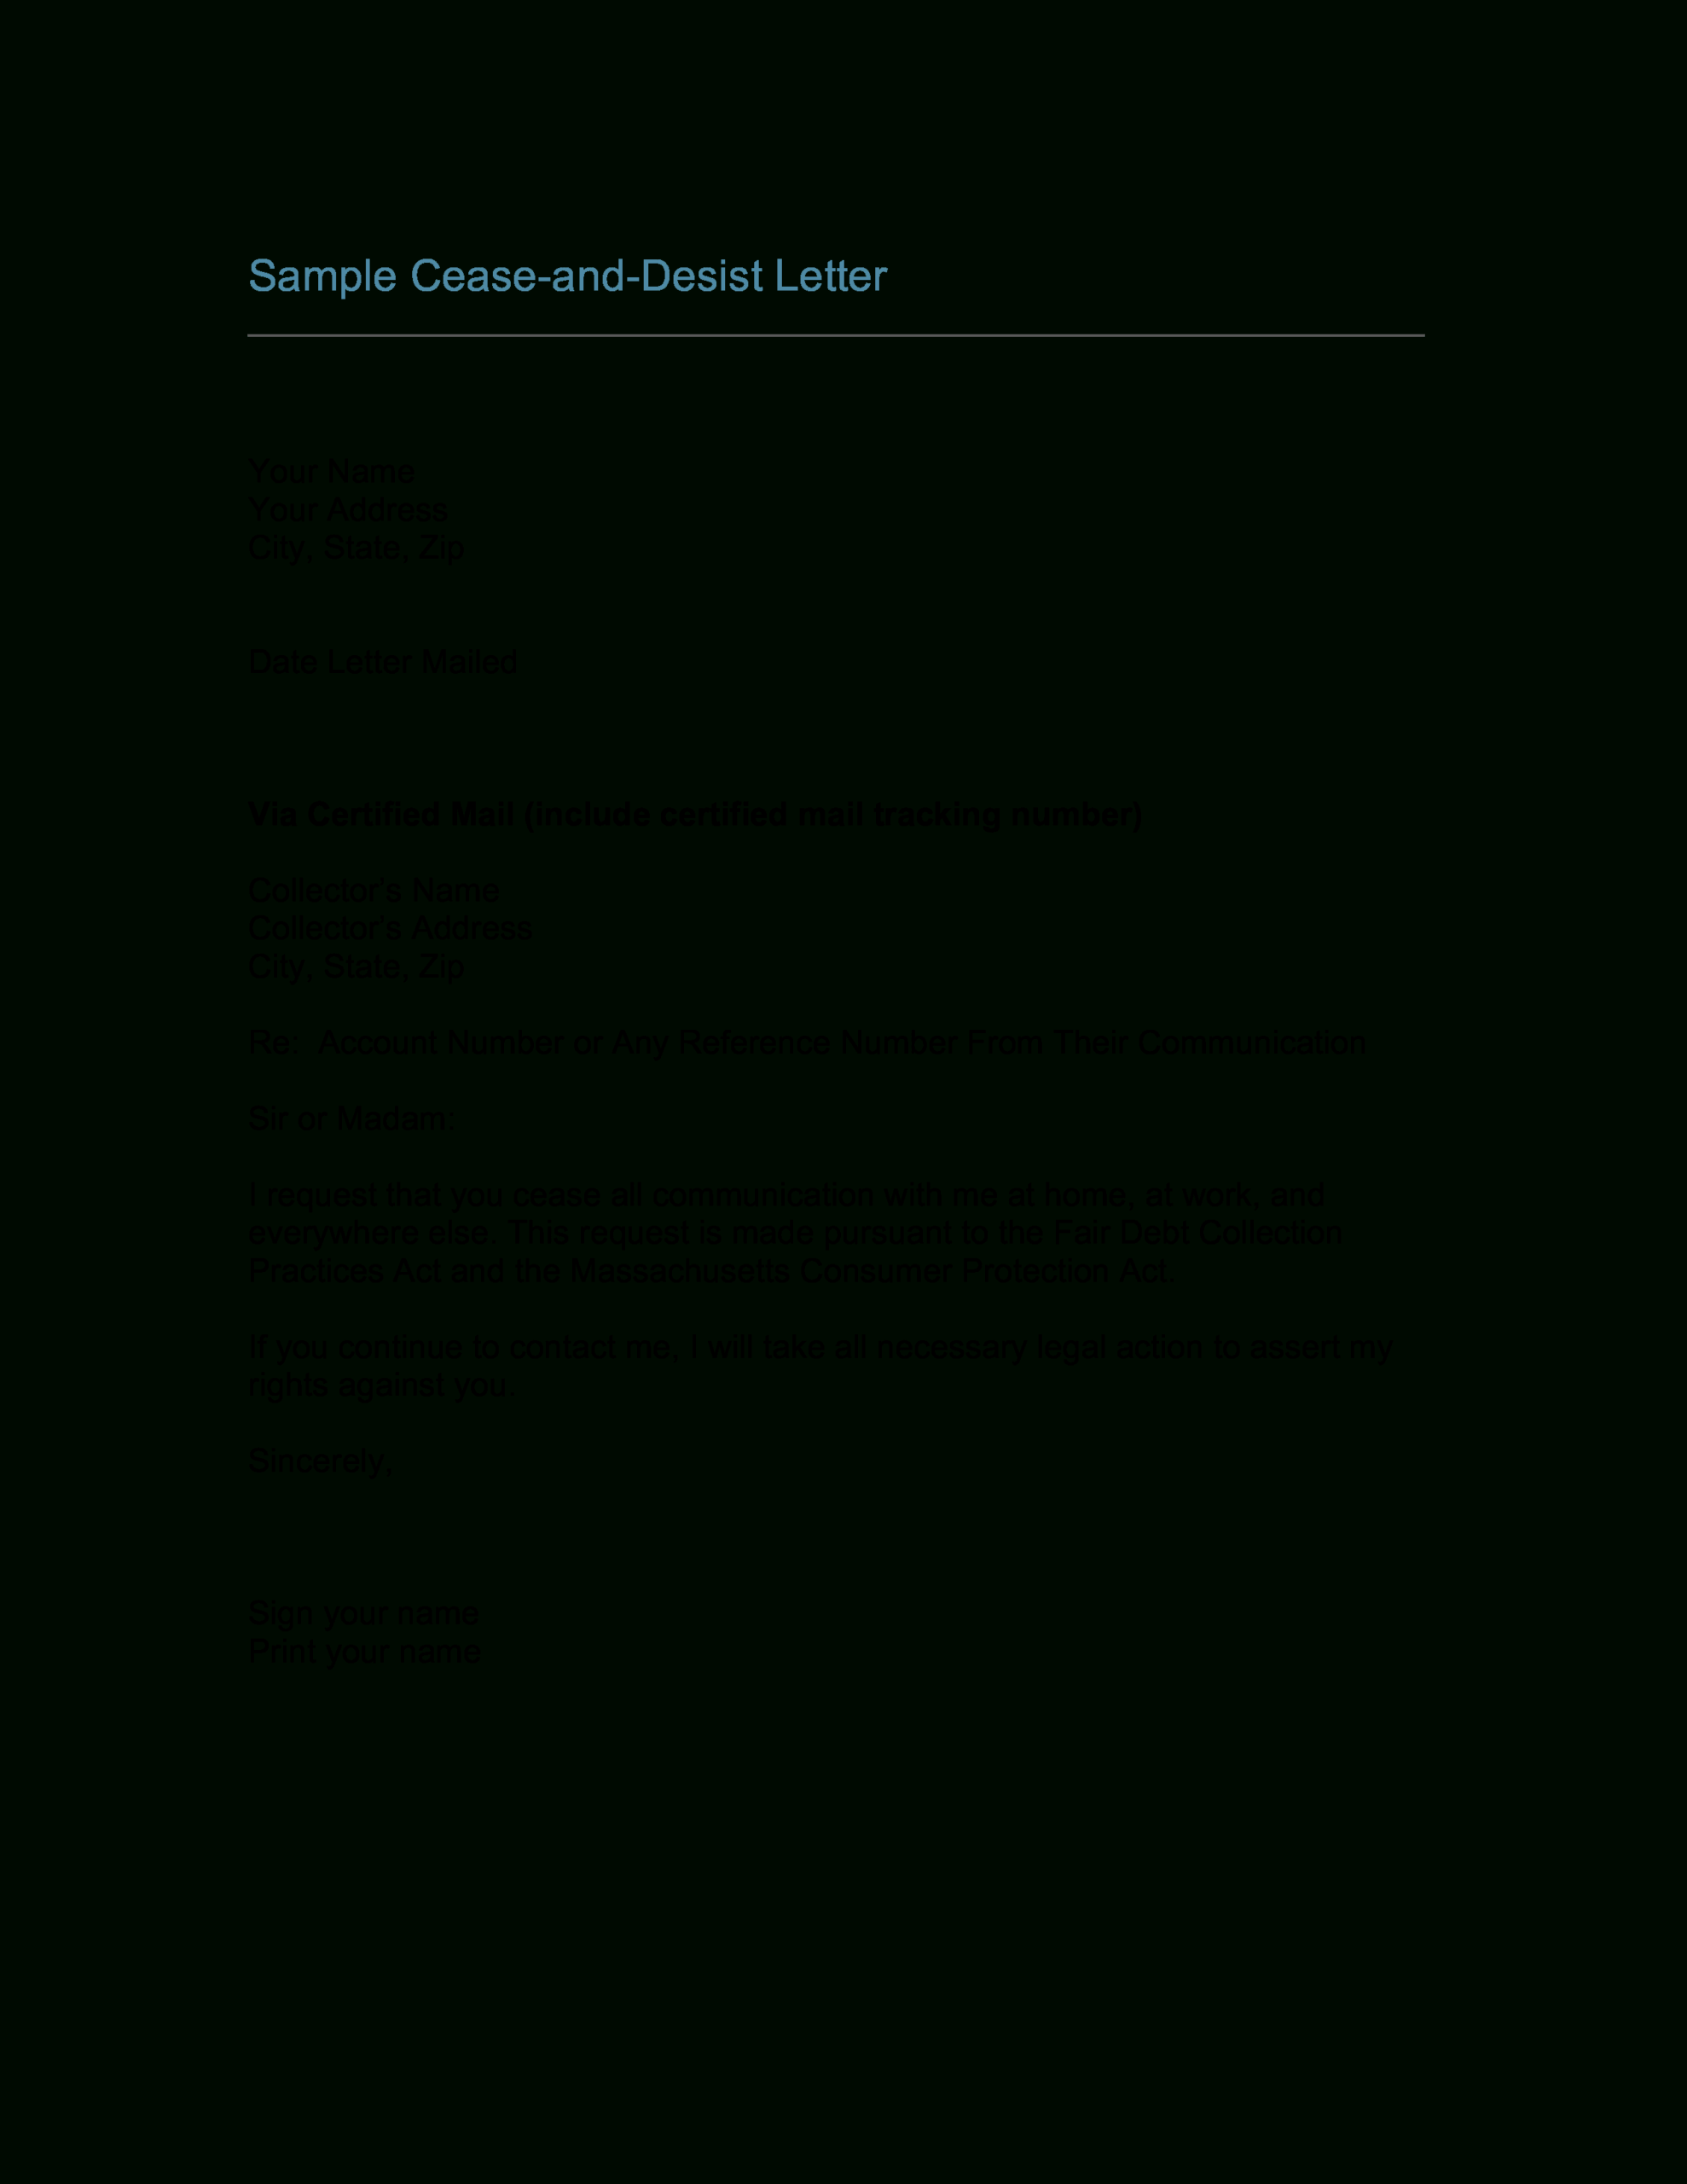 006 Cease And Desist Template 57833Aecc949 1 Top Ideas Pdf Intended For Cease And Desist Letter Template Defamation